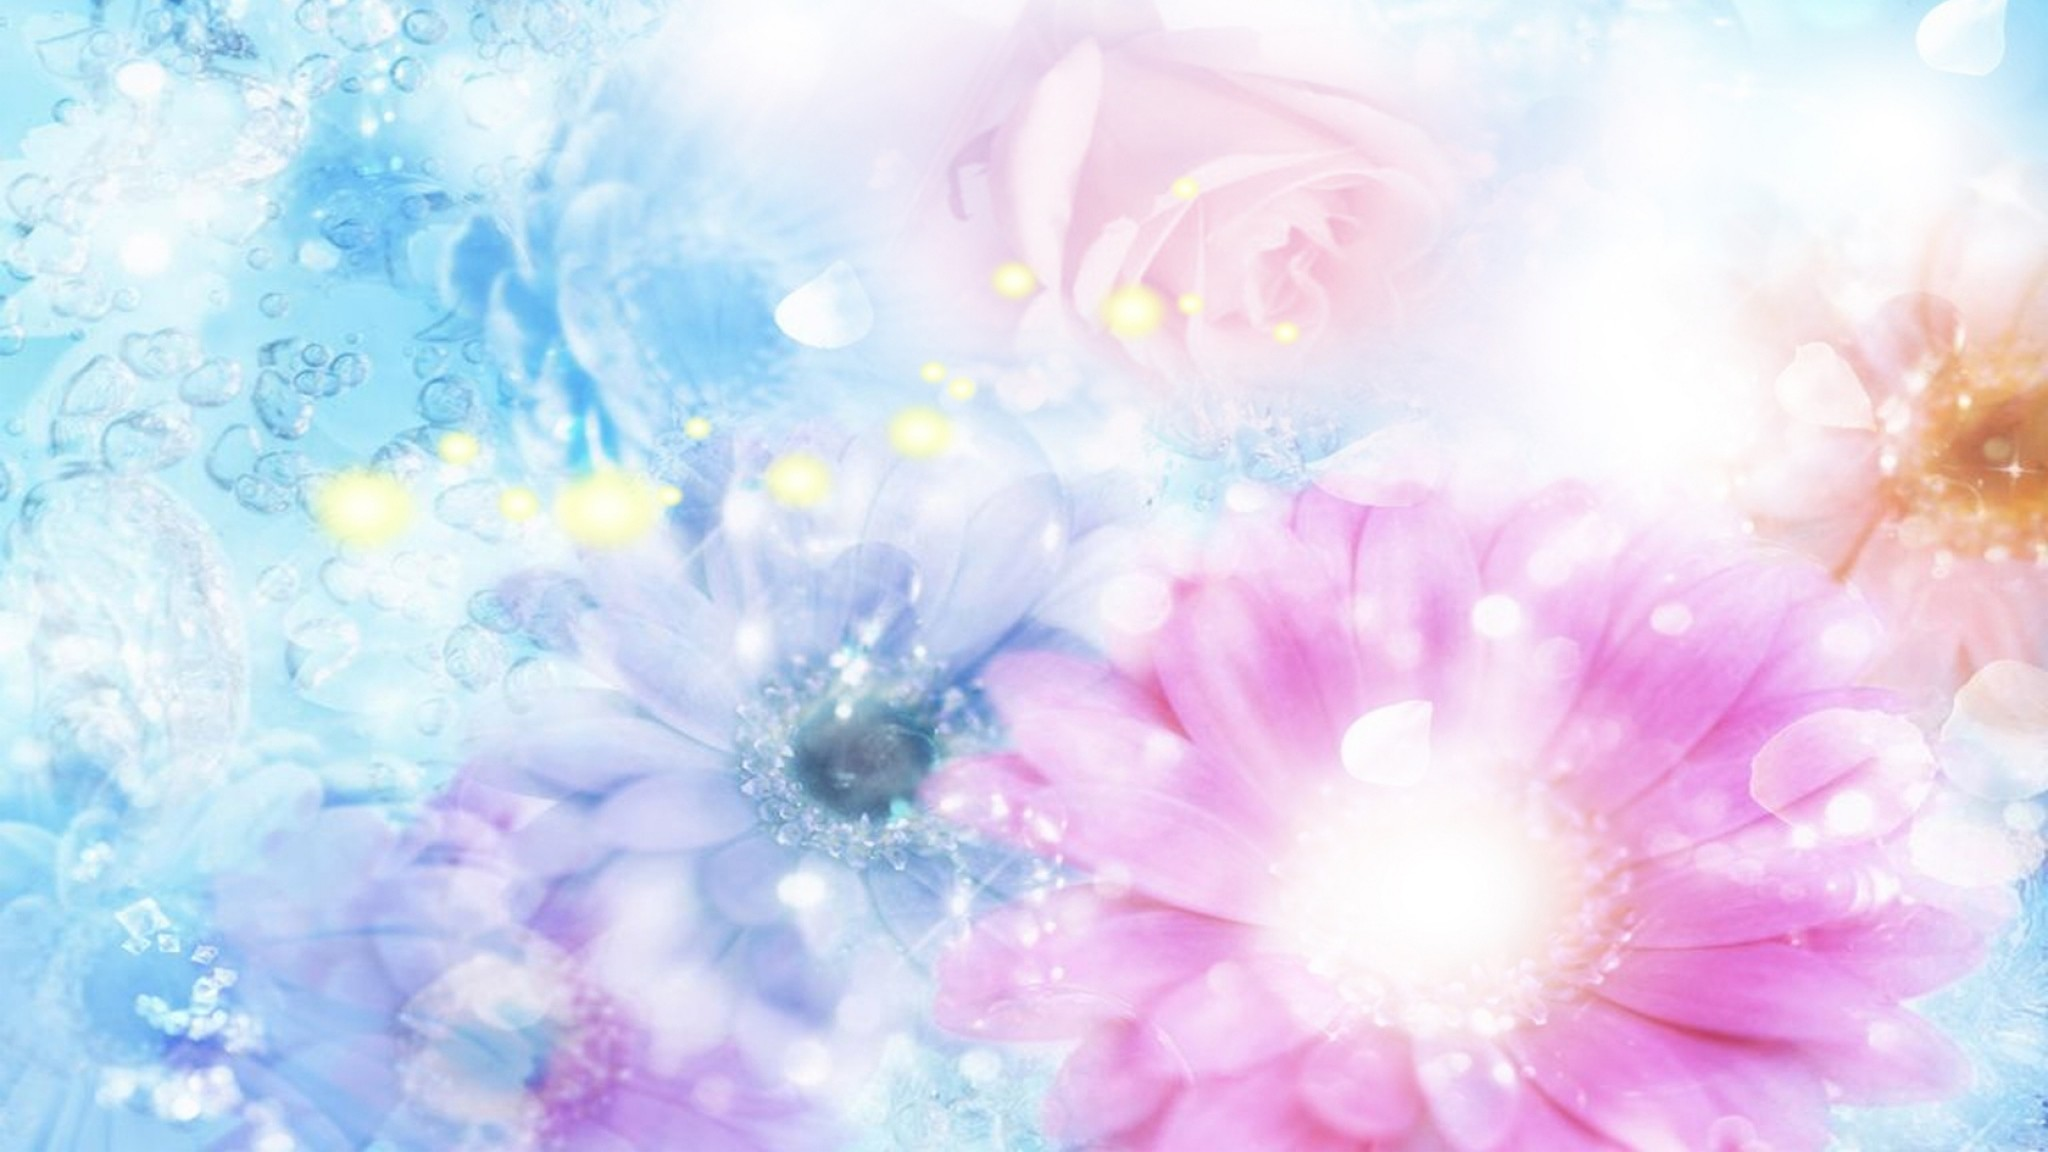 2048x1152 Preview wallpaper pink, blue, flowers, blurred, background, effects